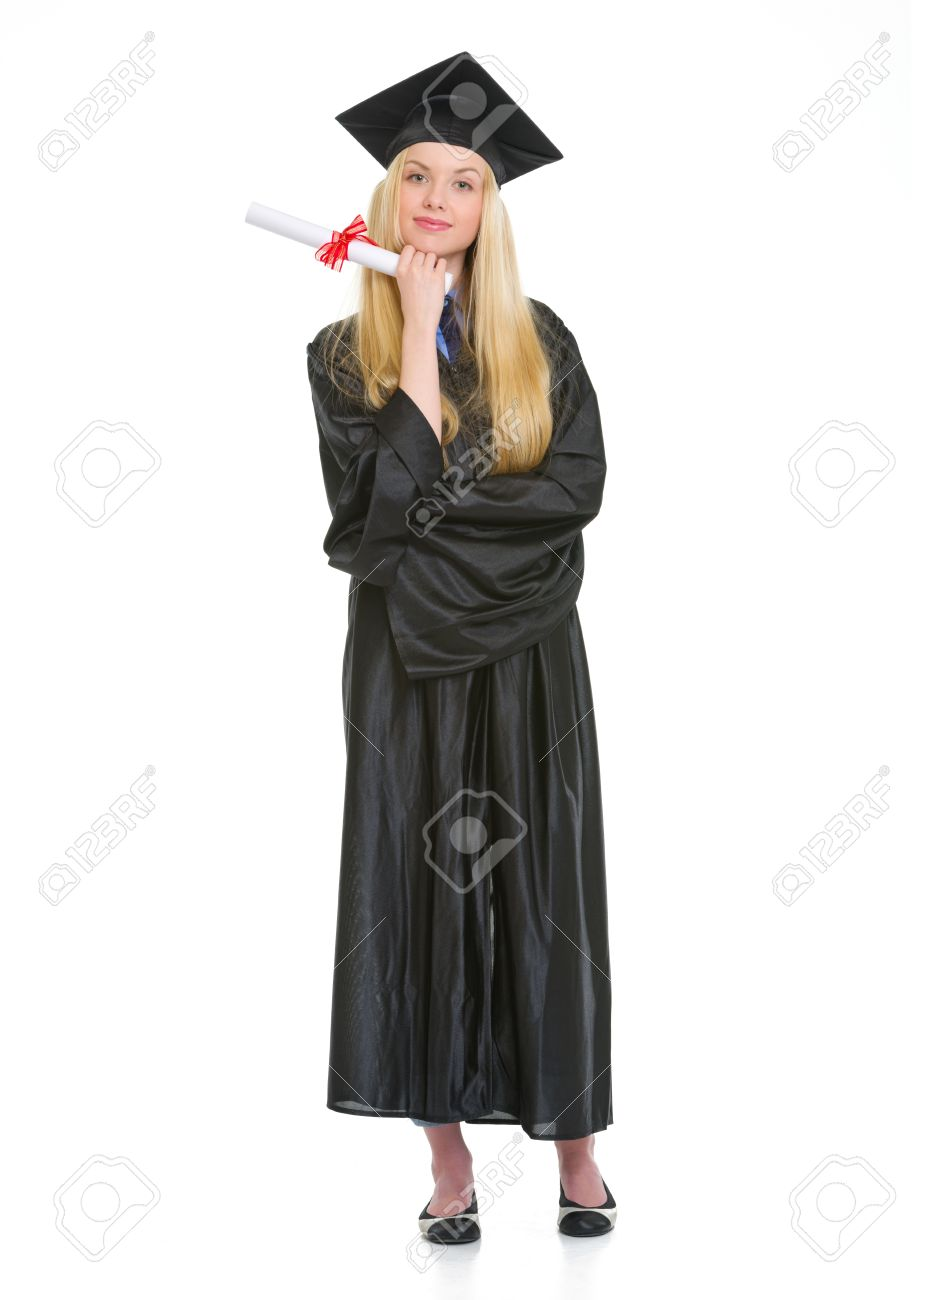 Full Length Portrait Of Young Woman In Graduation Gown With Diploma ...